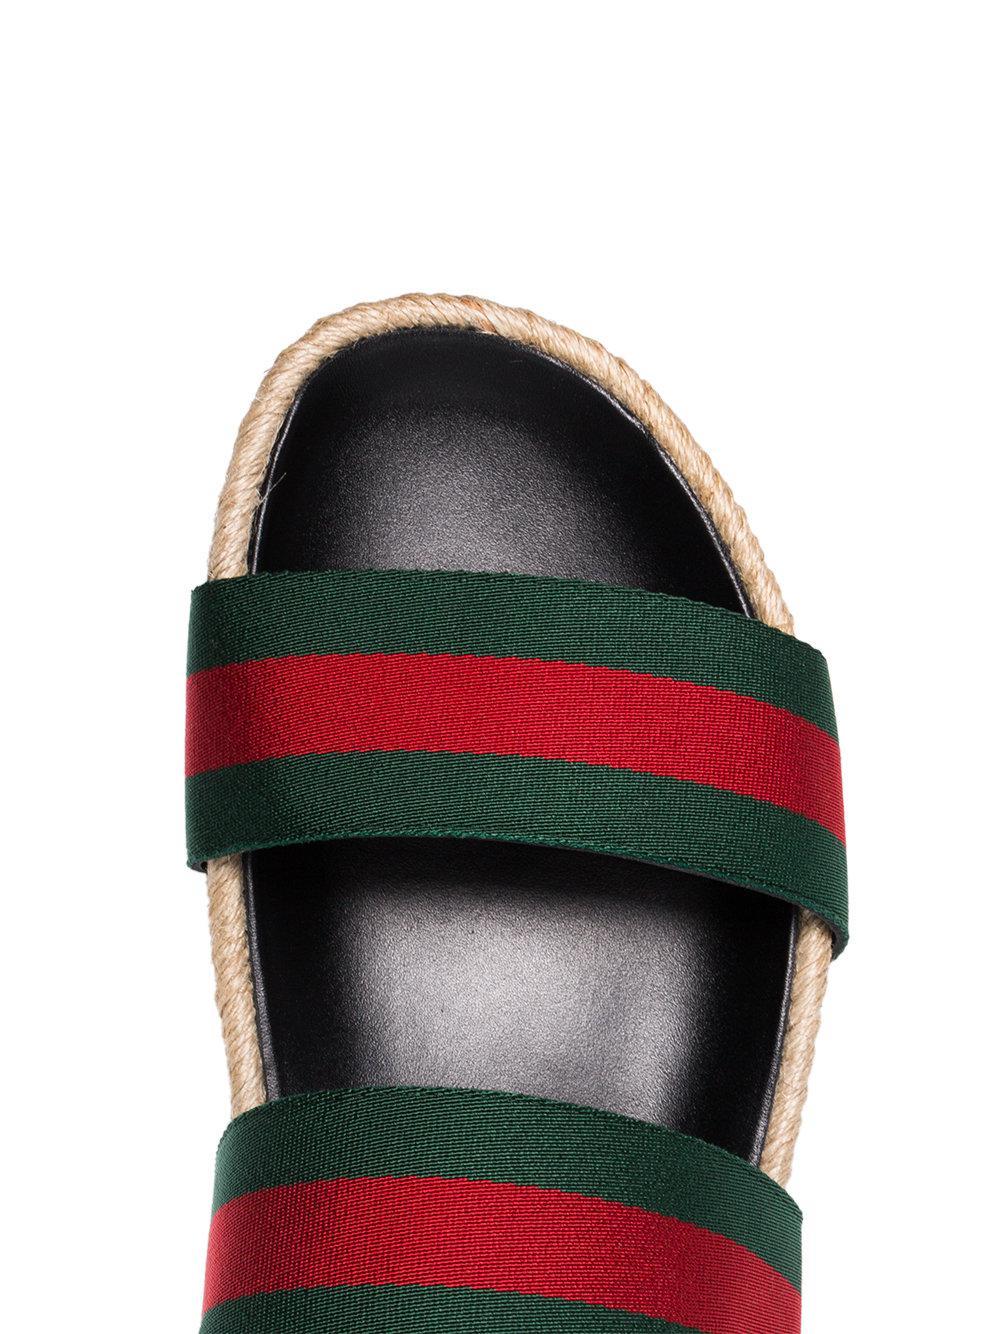 6a5ed2ab3eb Gucci - Green And Red Web Sandals for Men - Lyst. View fullscreen